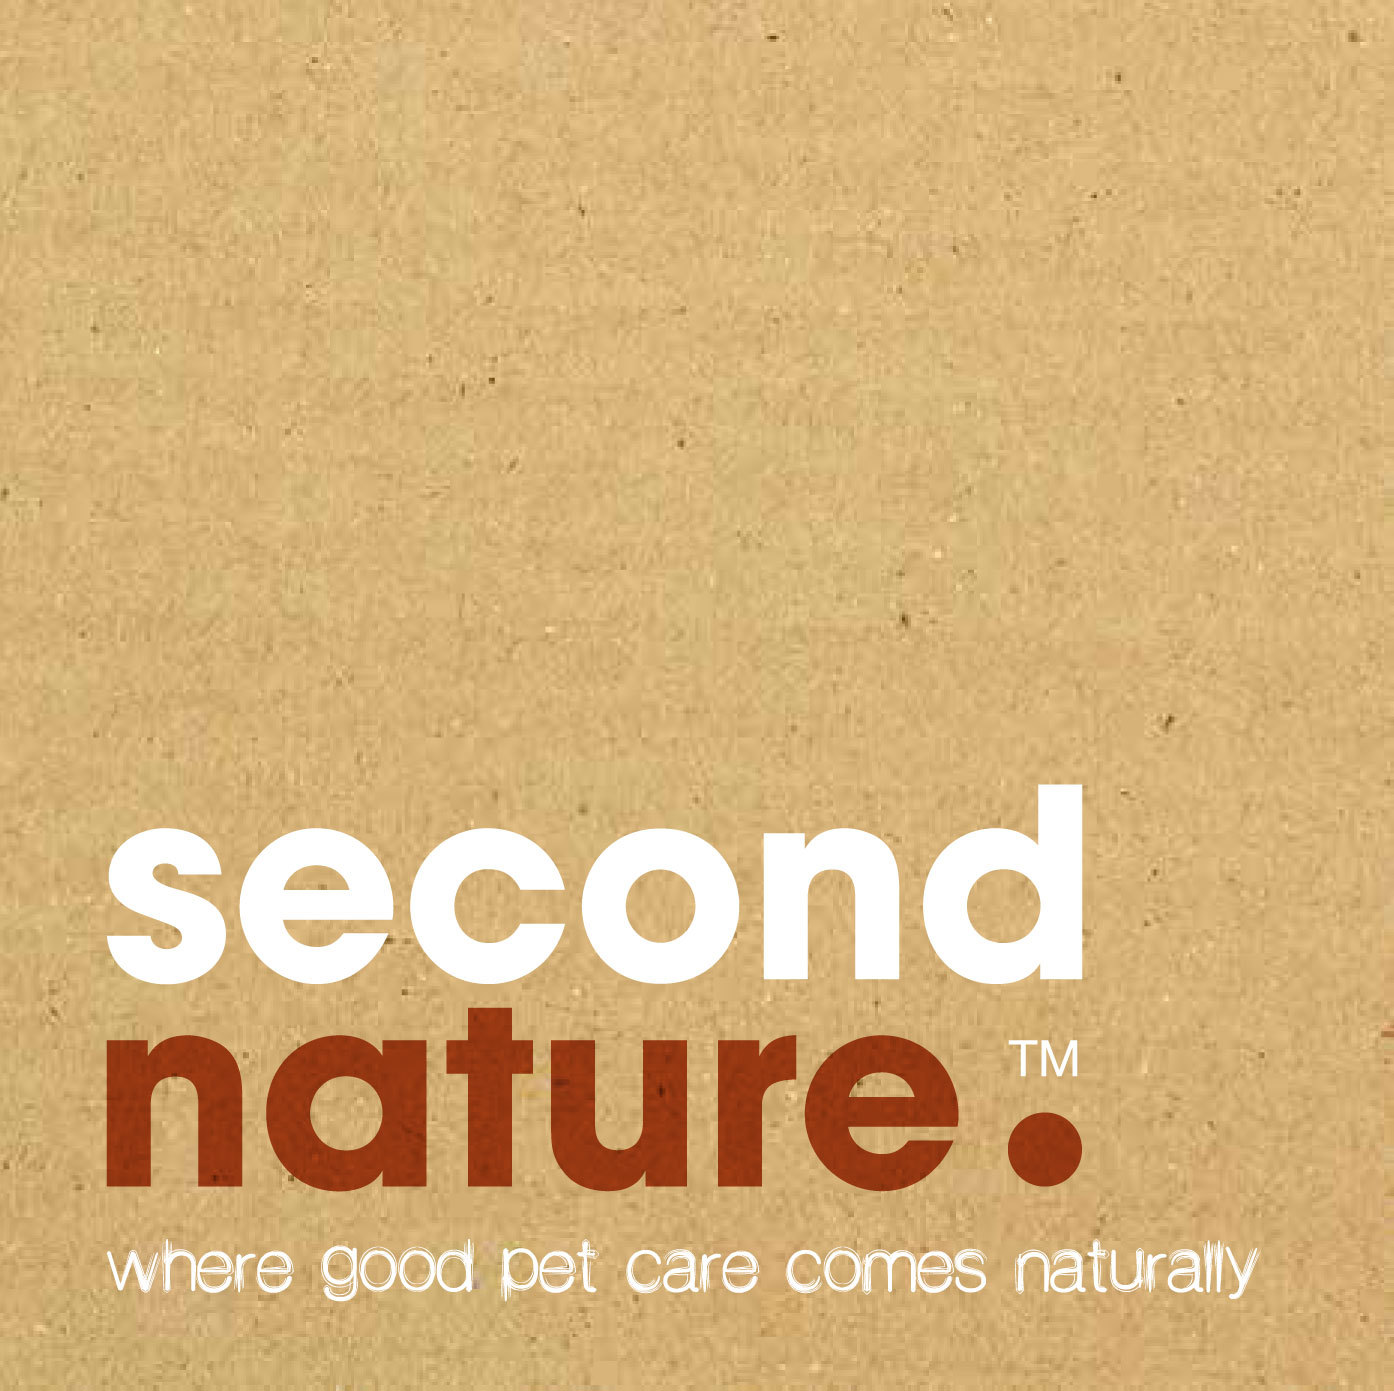 second nature. TM where good pet care comes naturally